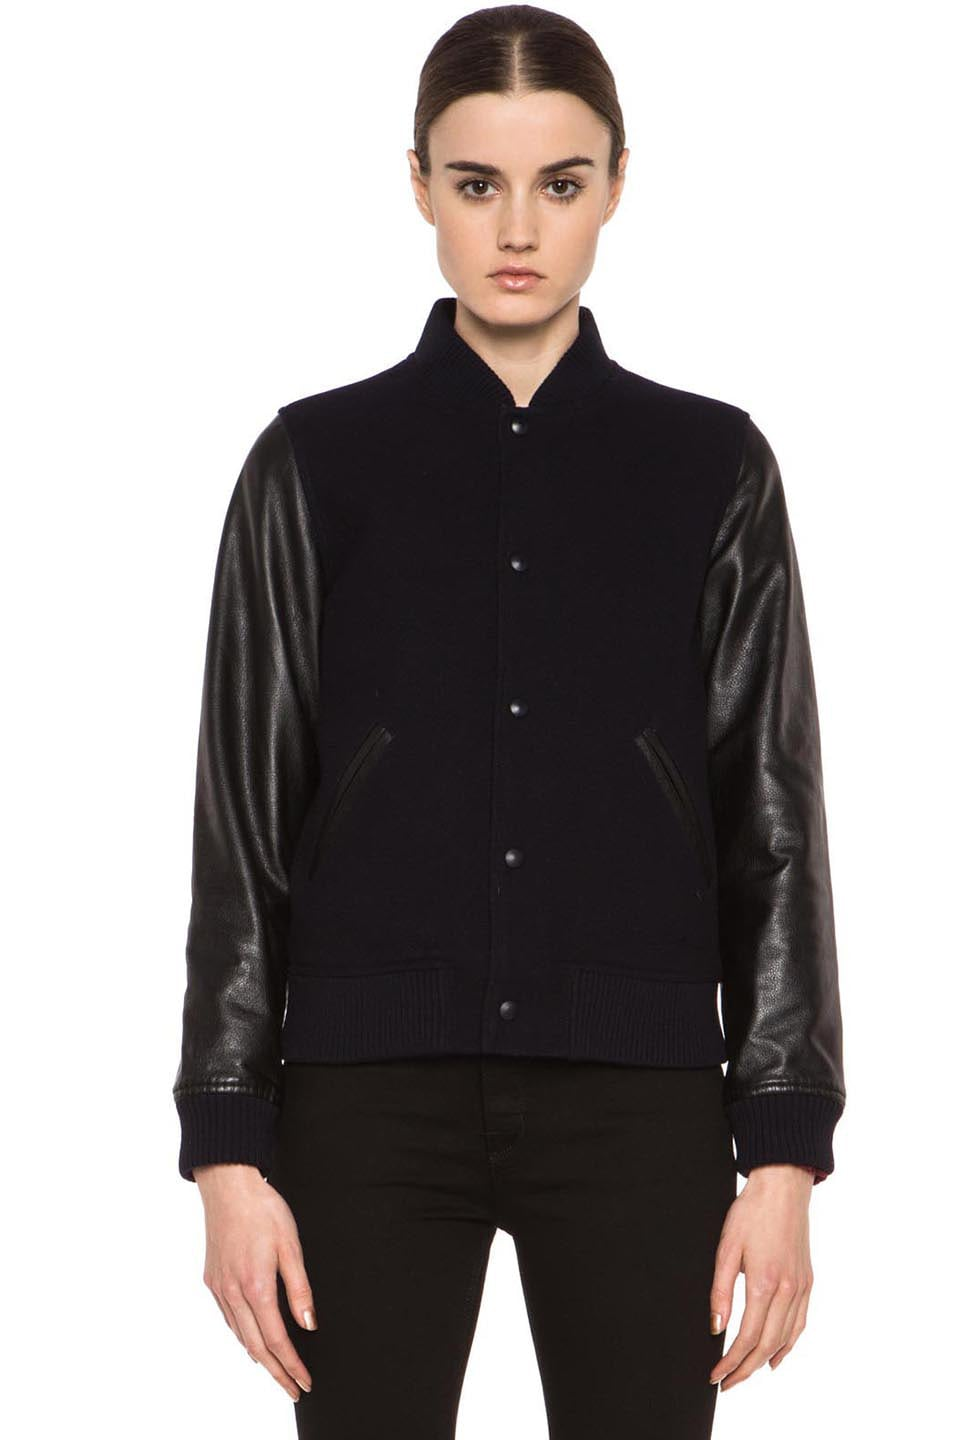 Image 2 of A.P.C. Teddy Rizzo Wool-Blend Leather Baseball Jacket in Dark Navy